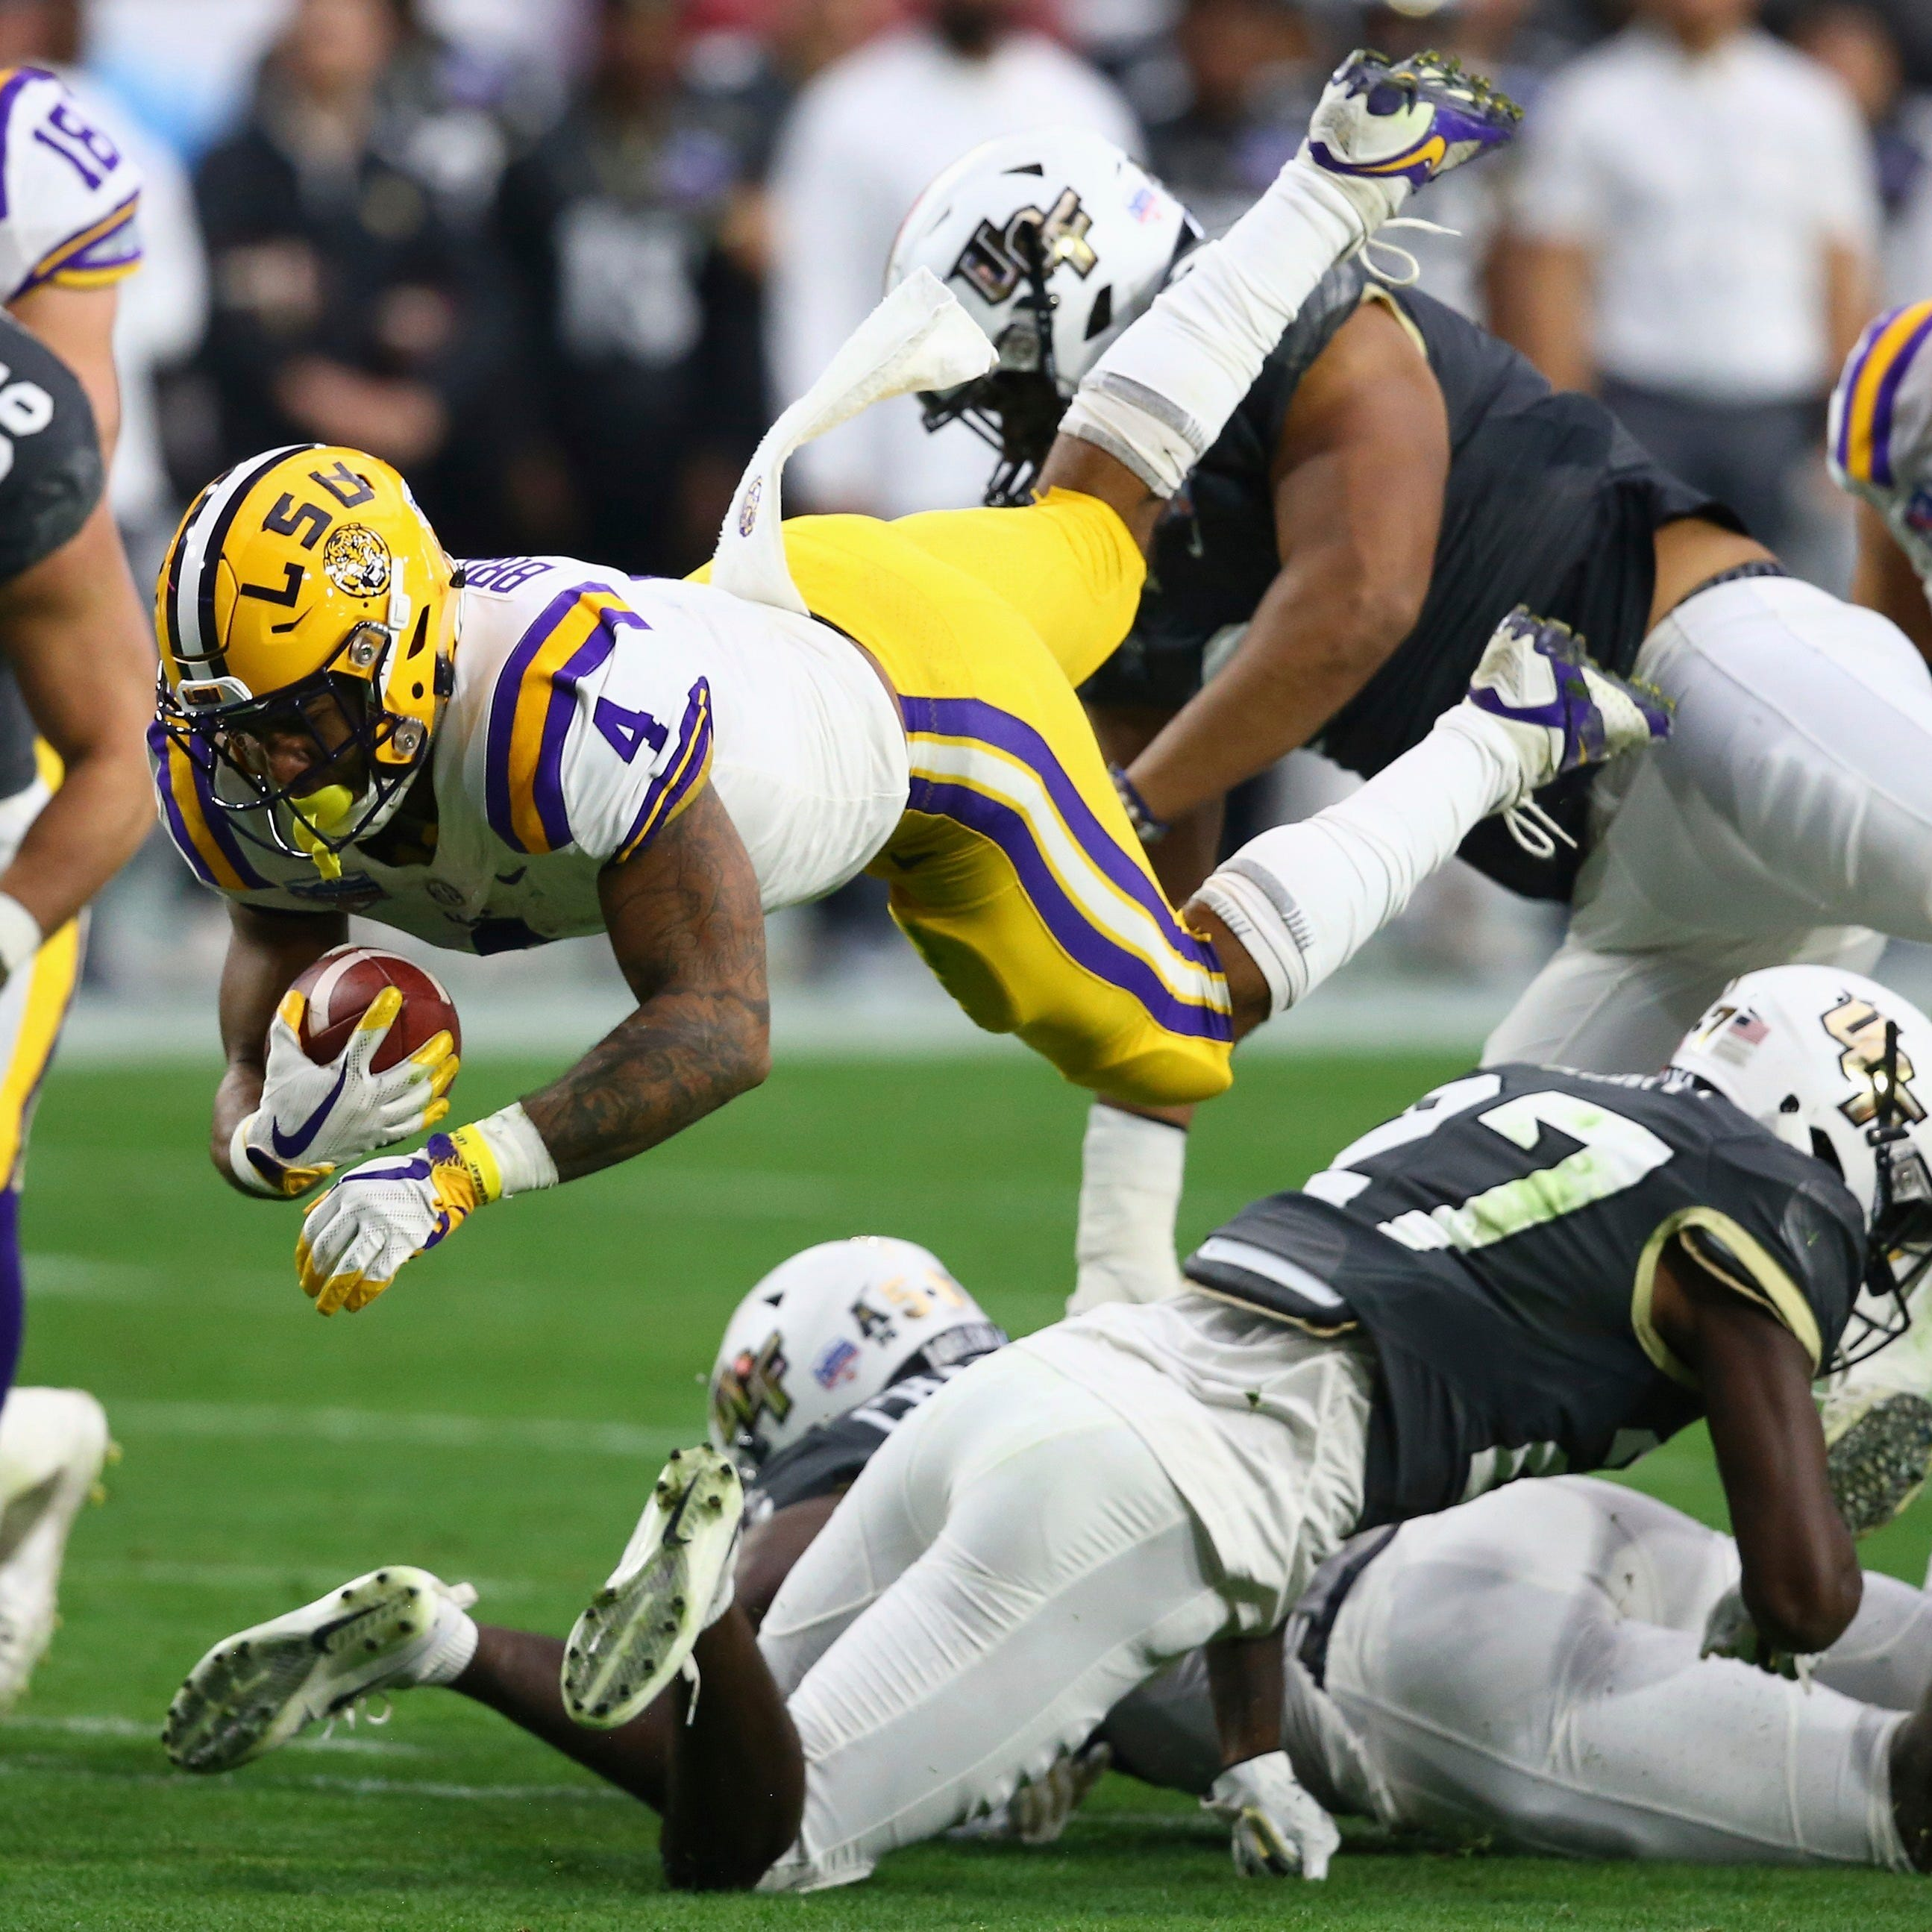 Tuesday's bowls: LSU ends Central Florida's 25-game win streak